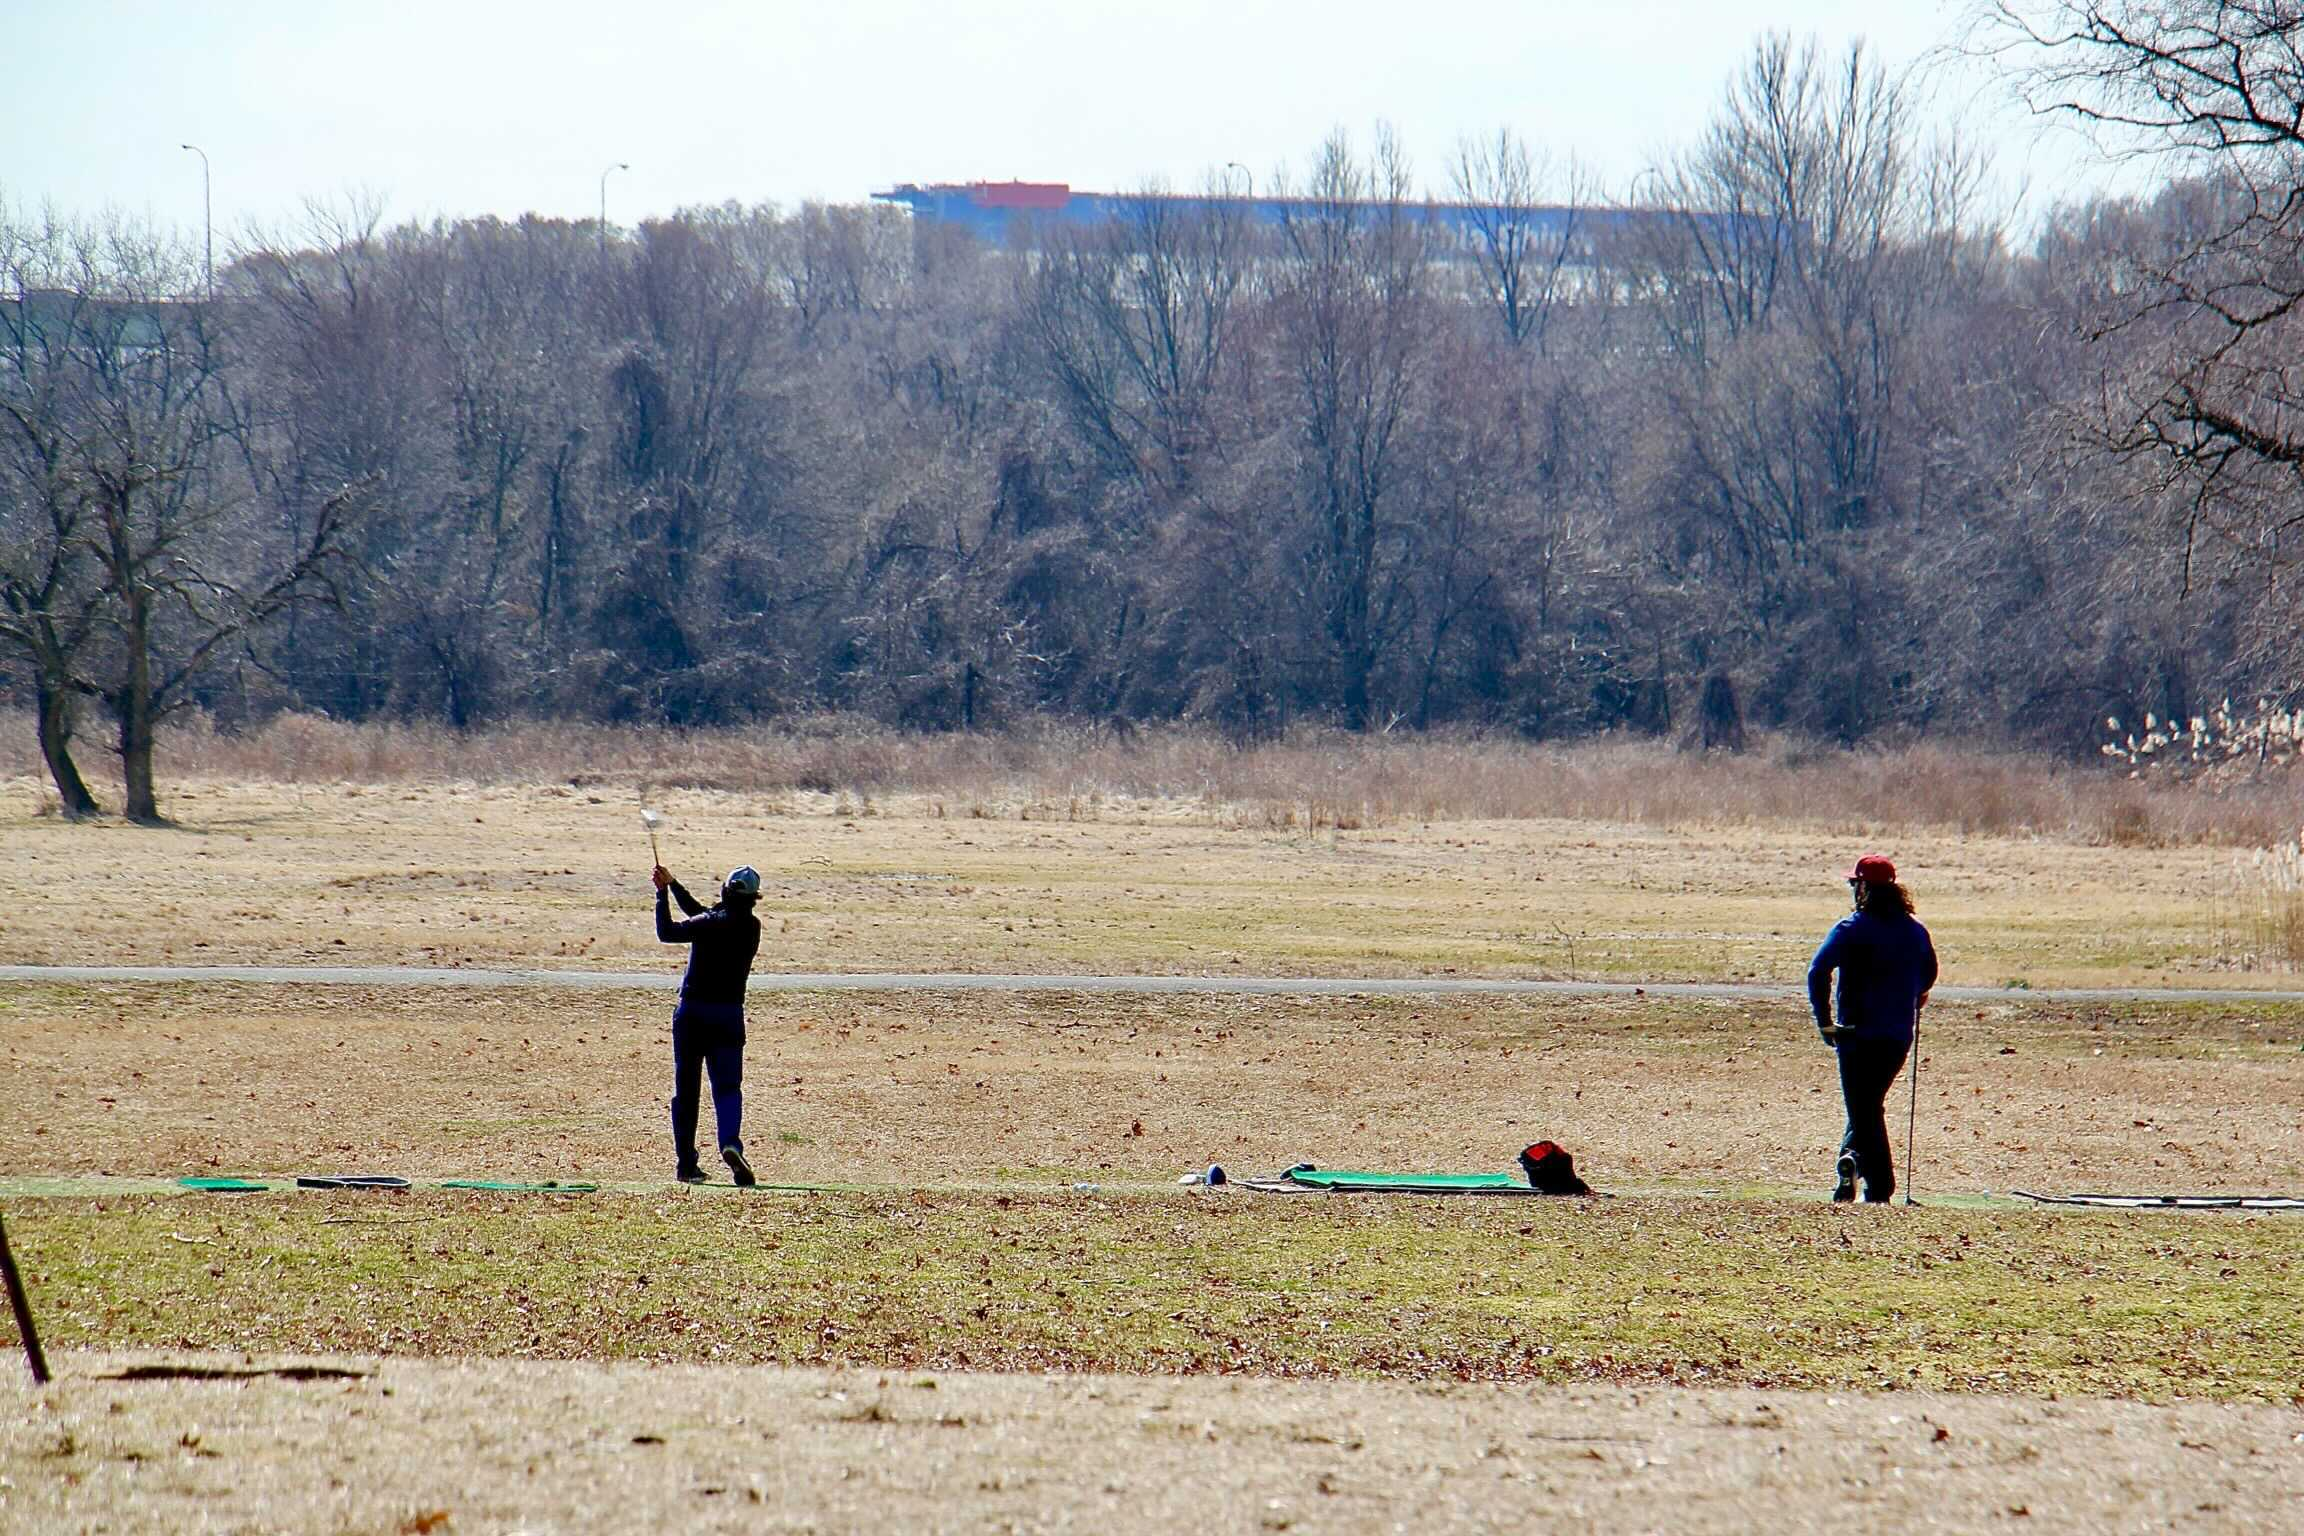 Golfers work on their swings at the abandoned FDR Park golf course